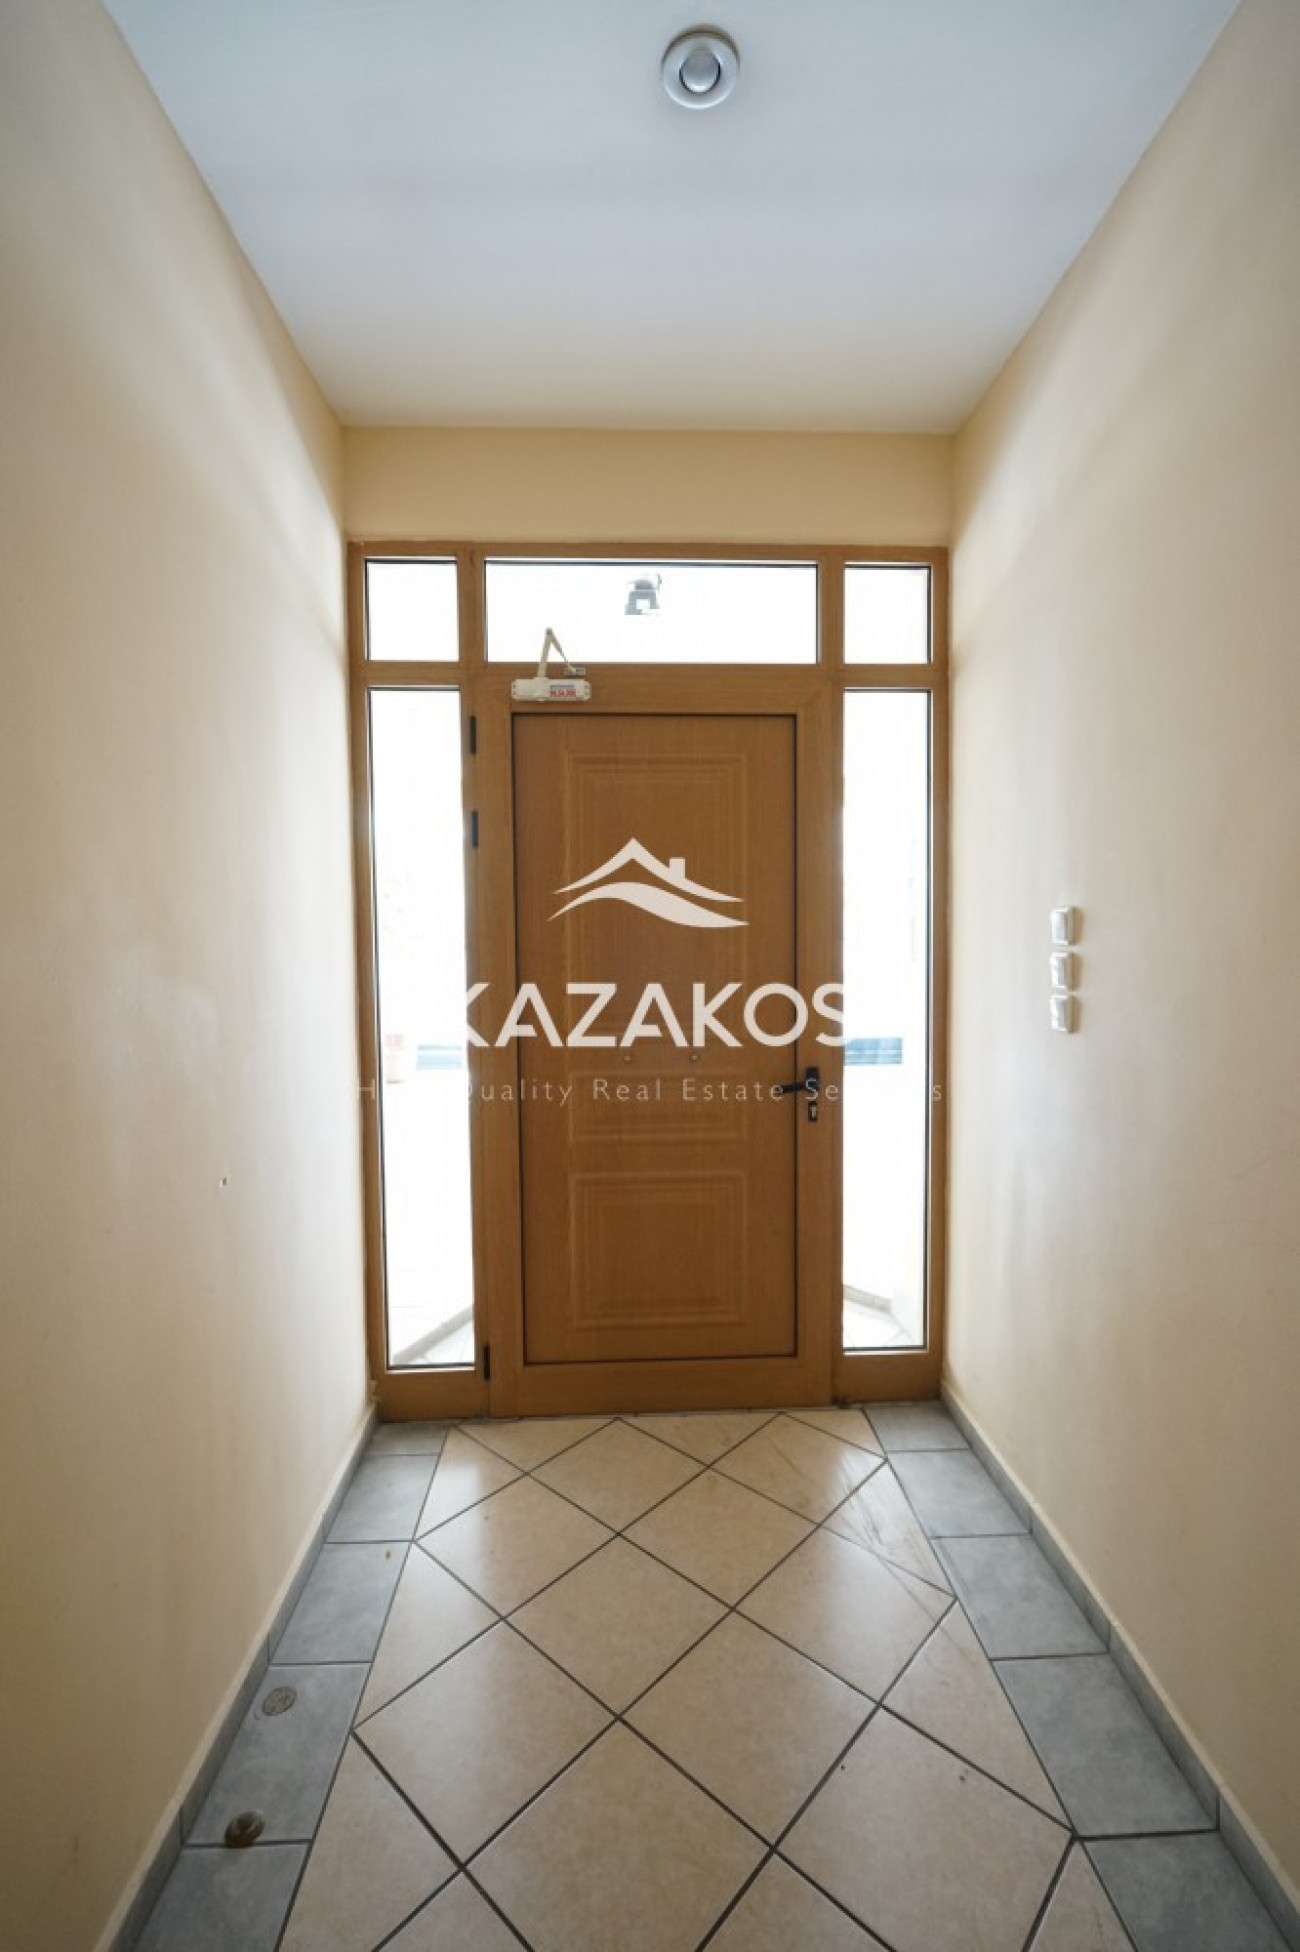 Apartment for Sale in Amerikis Square, Athens City Center, Greece